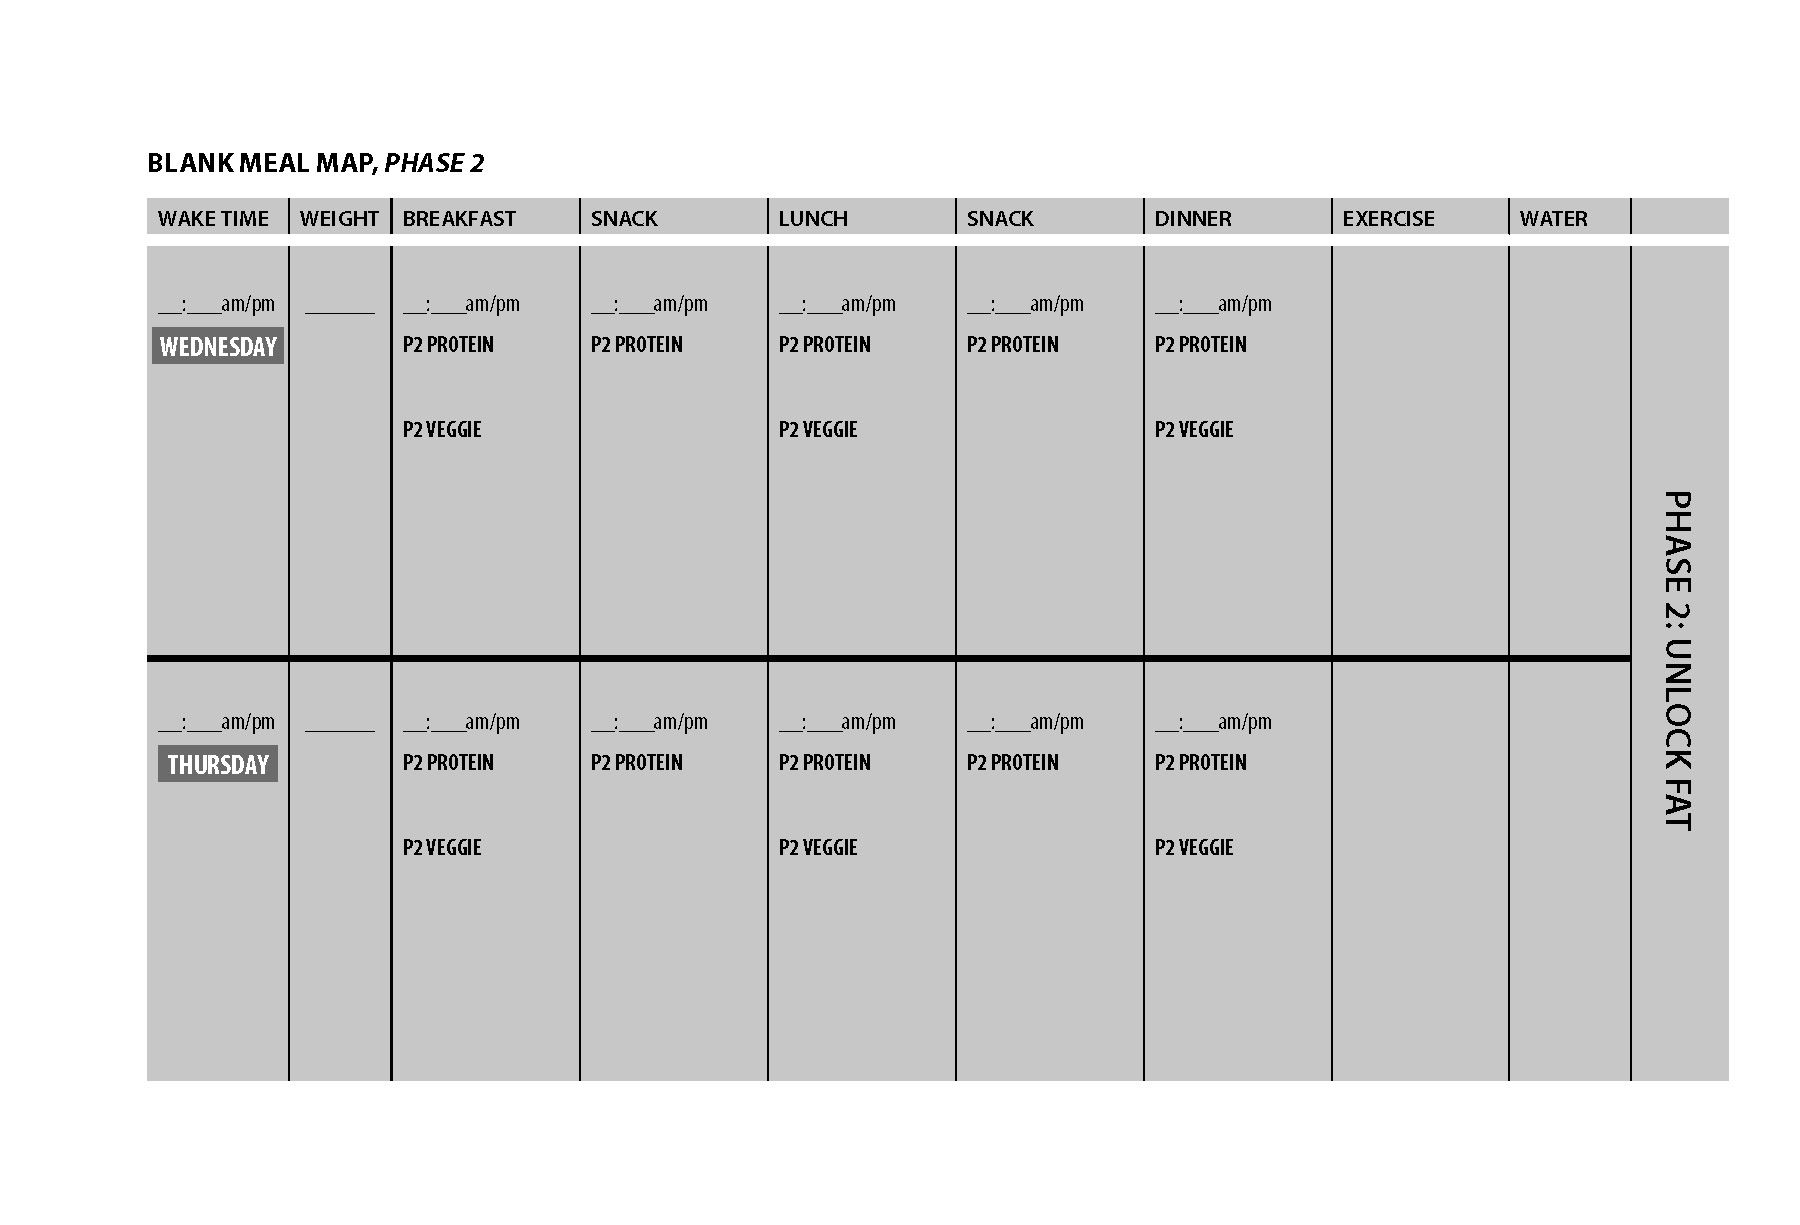 Printable Blank Meal Map For Phase 3 Of The Fast